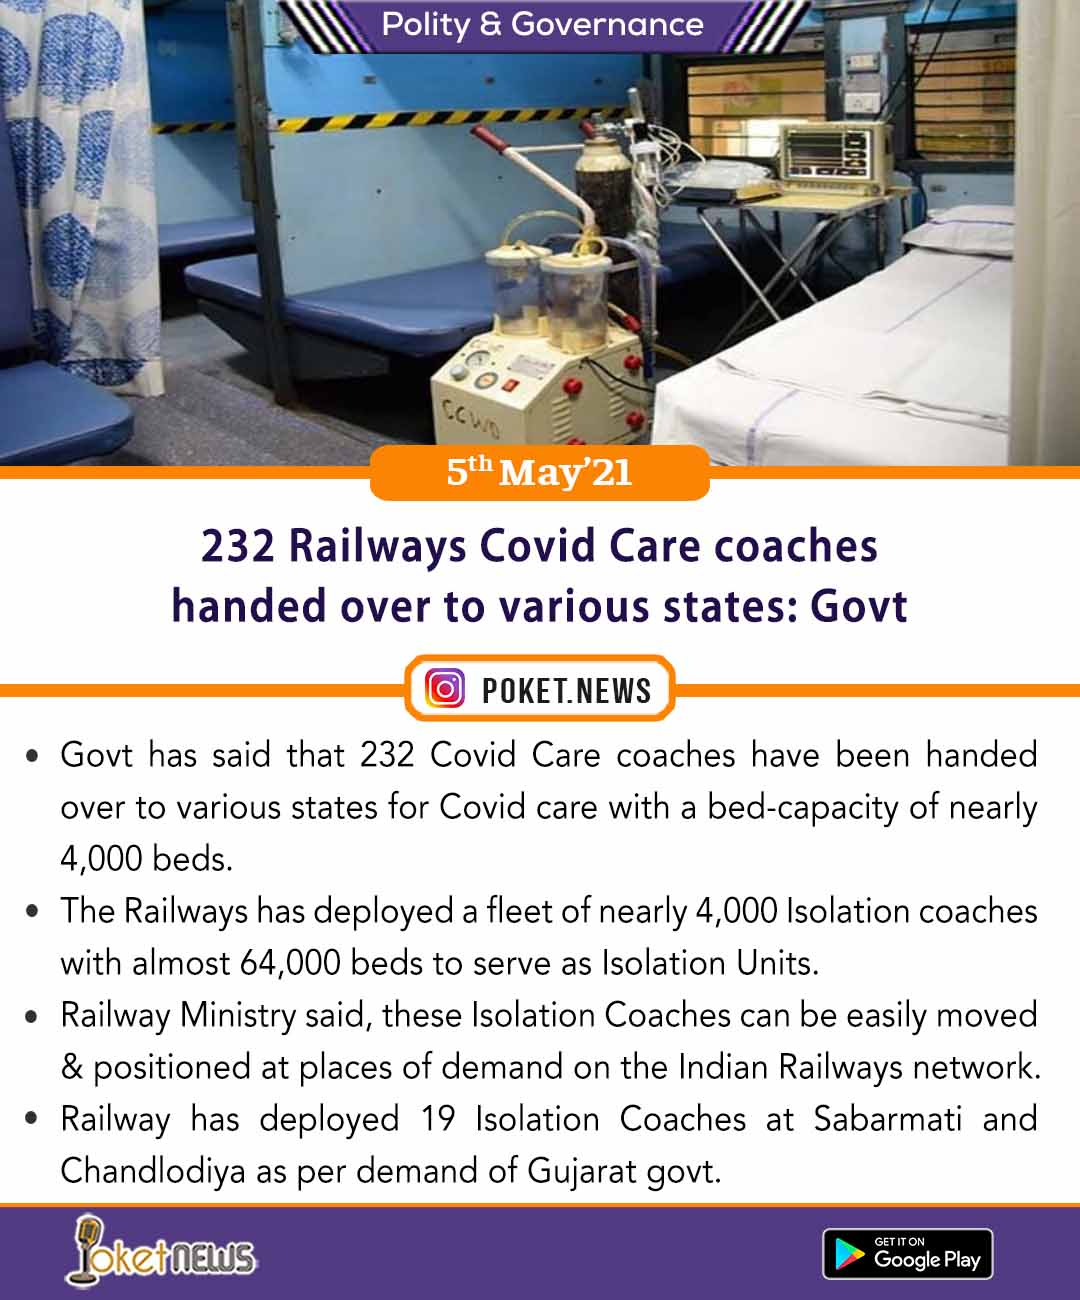 232 Railways Covid Care coaches handed over to various states: Govt